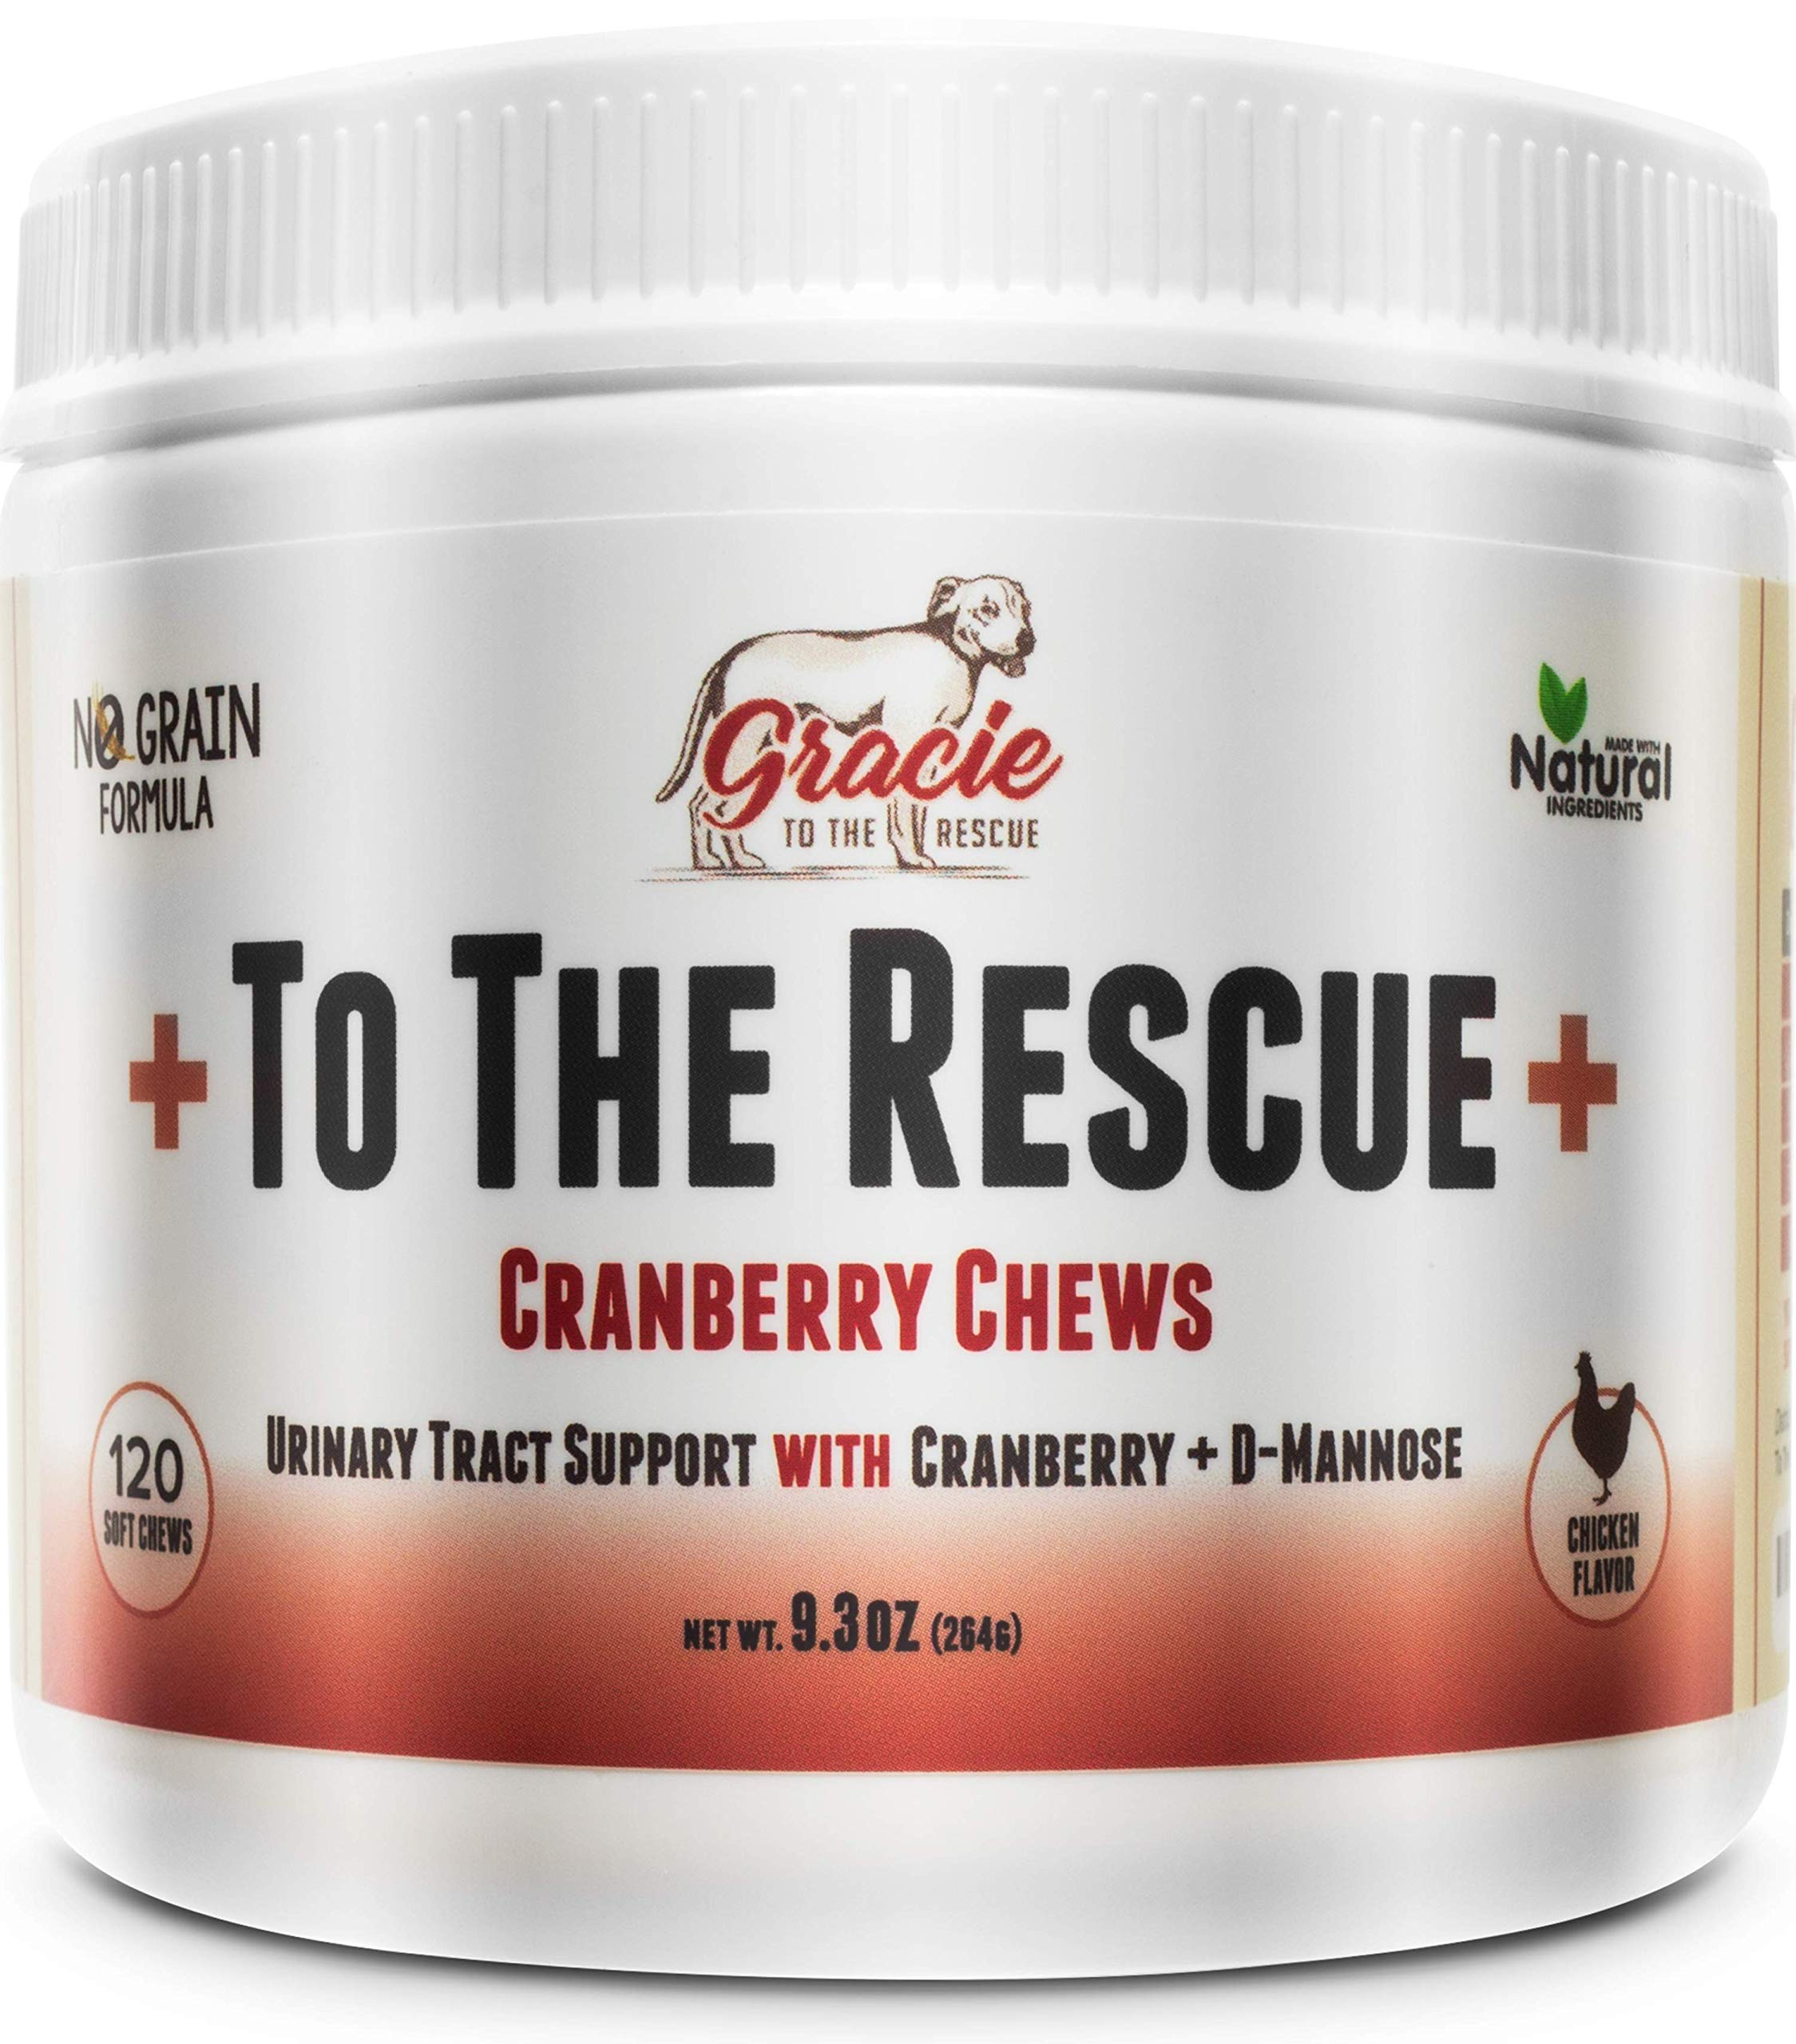 Natural Dog UTI Treatment - Cranberry for Dogs, Bladder and UTI Support for Dogs - Bladder Infection Relief with D-Mannose 120 Chicken Flavored Soft Chews +To The Rescue+ by To The Rescue